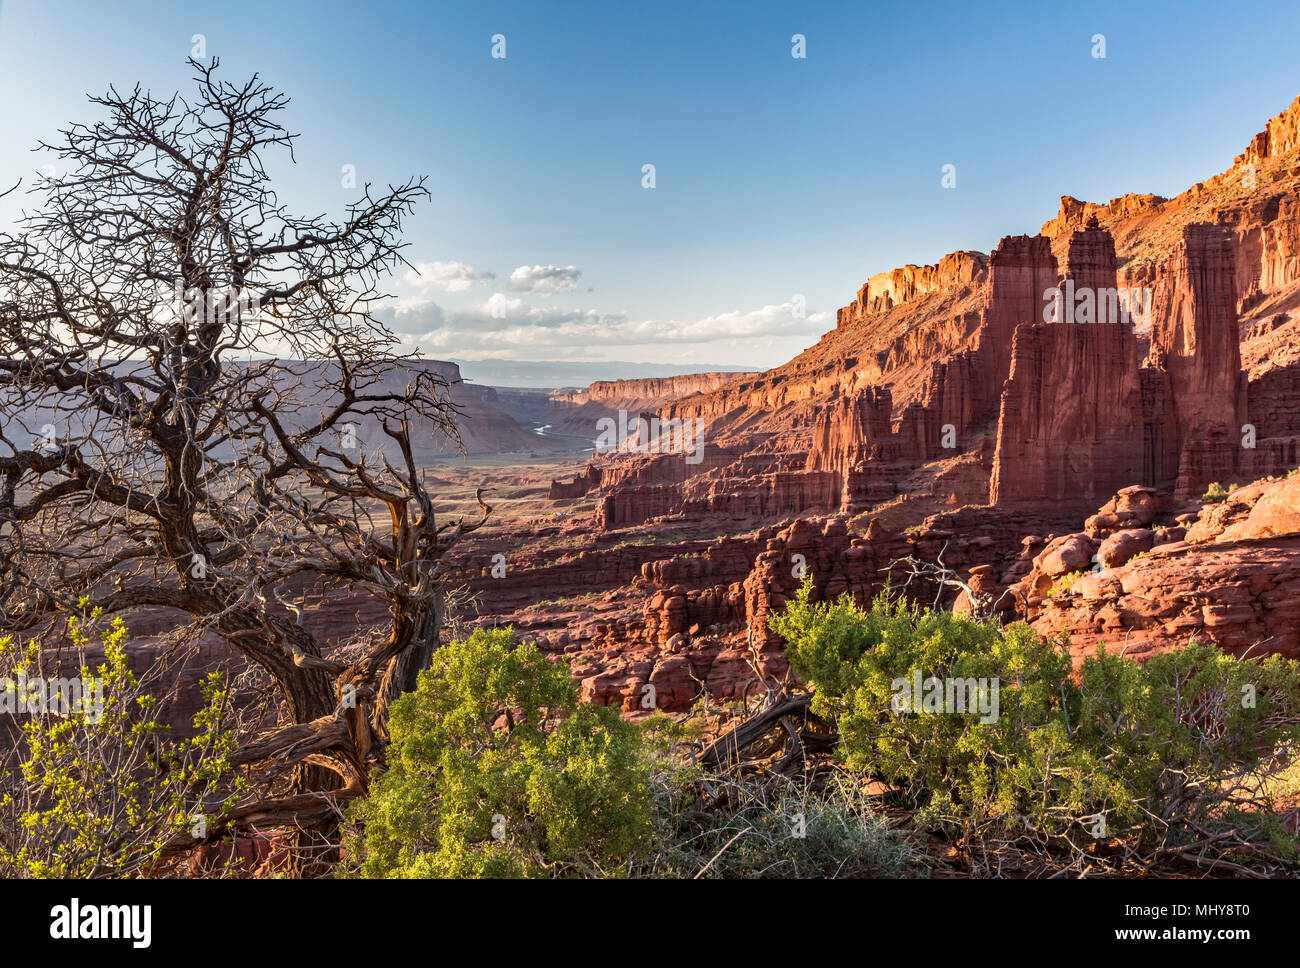 An ancient juniper tree grows near the Fisher Towers rock formations near Moab, Utah. - Stock Image